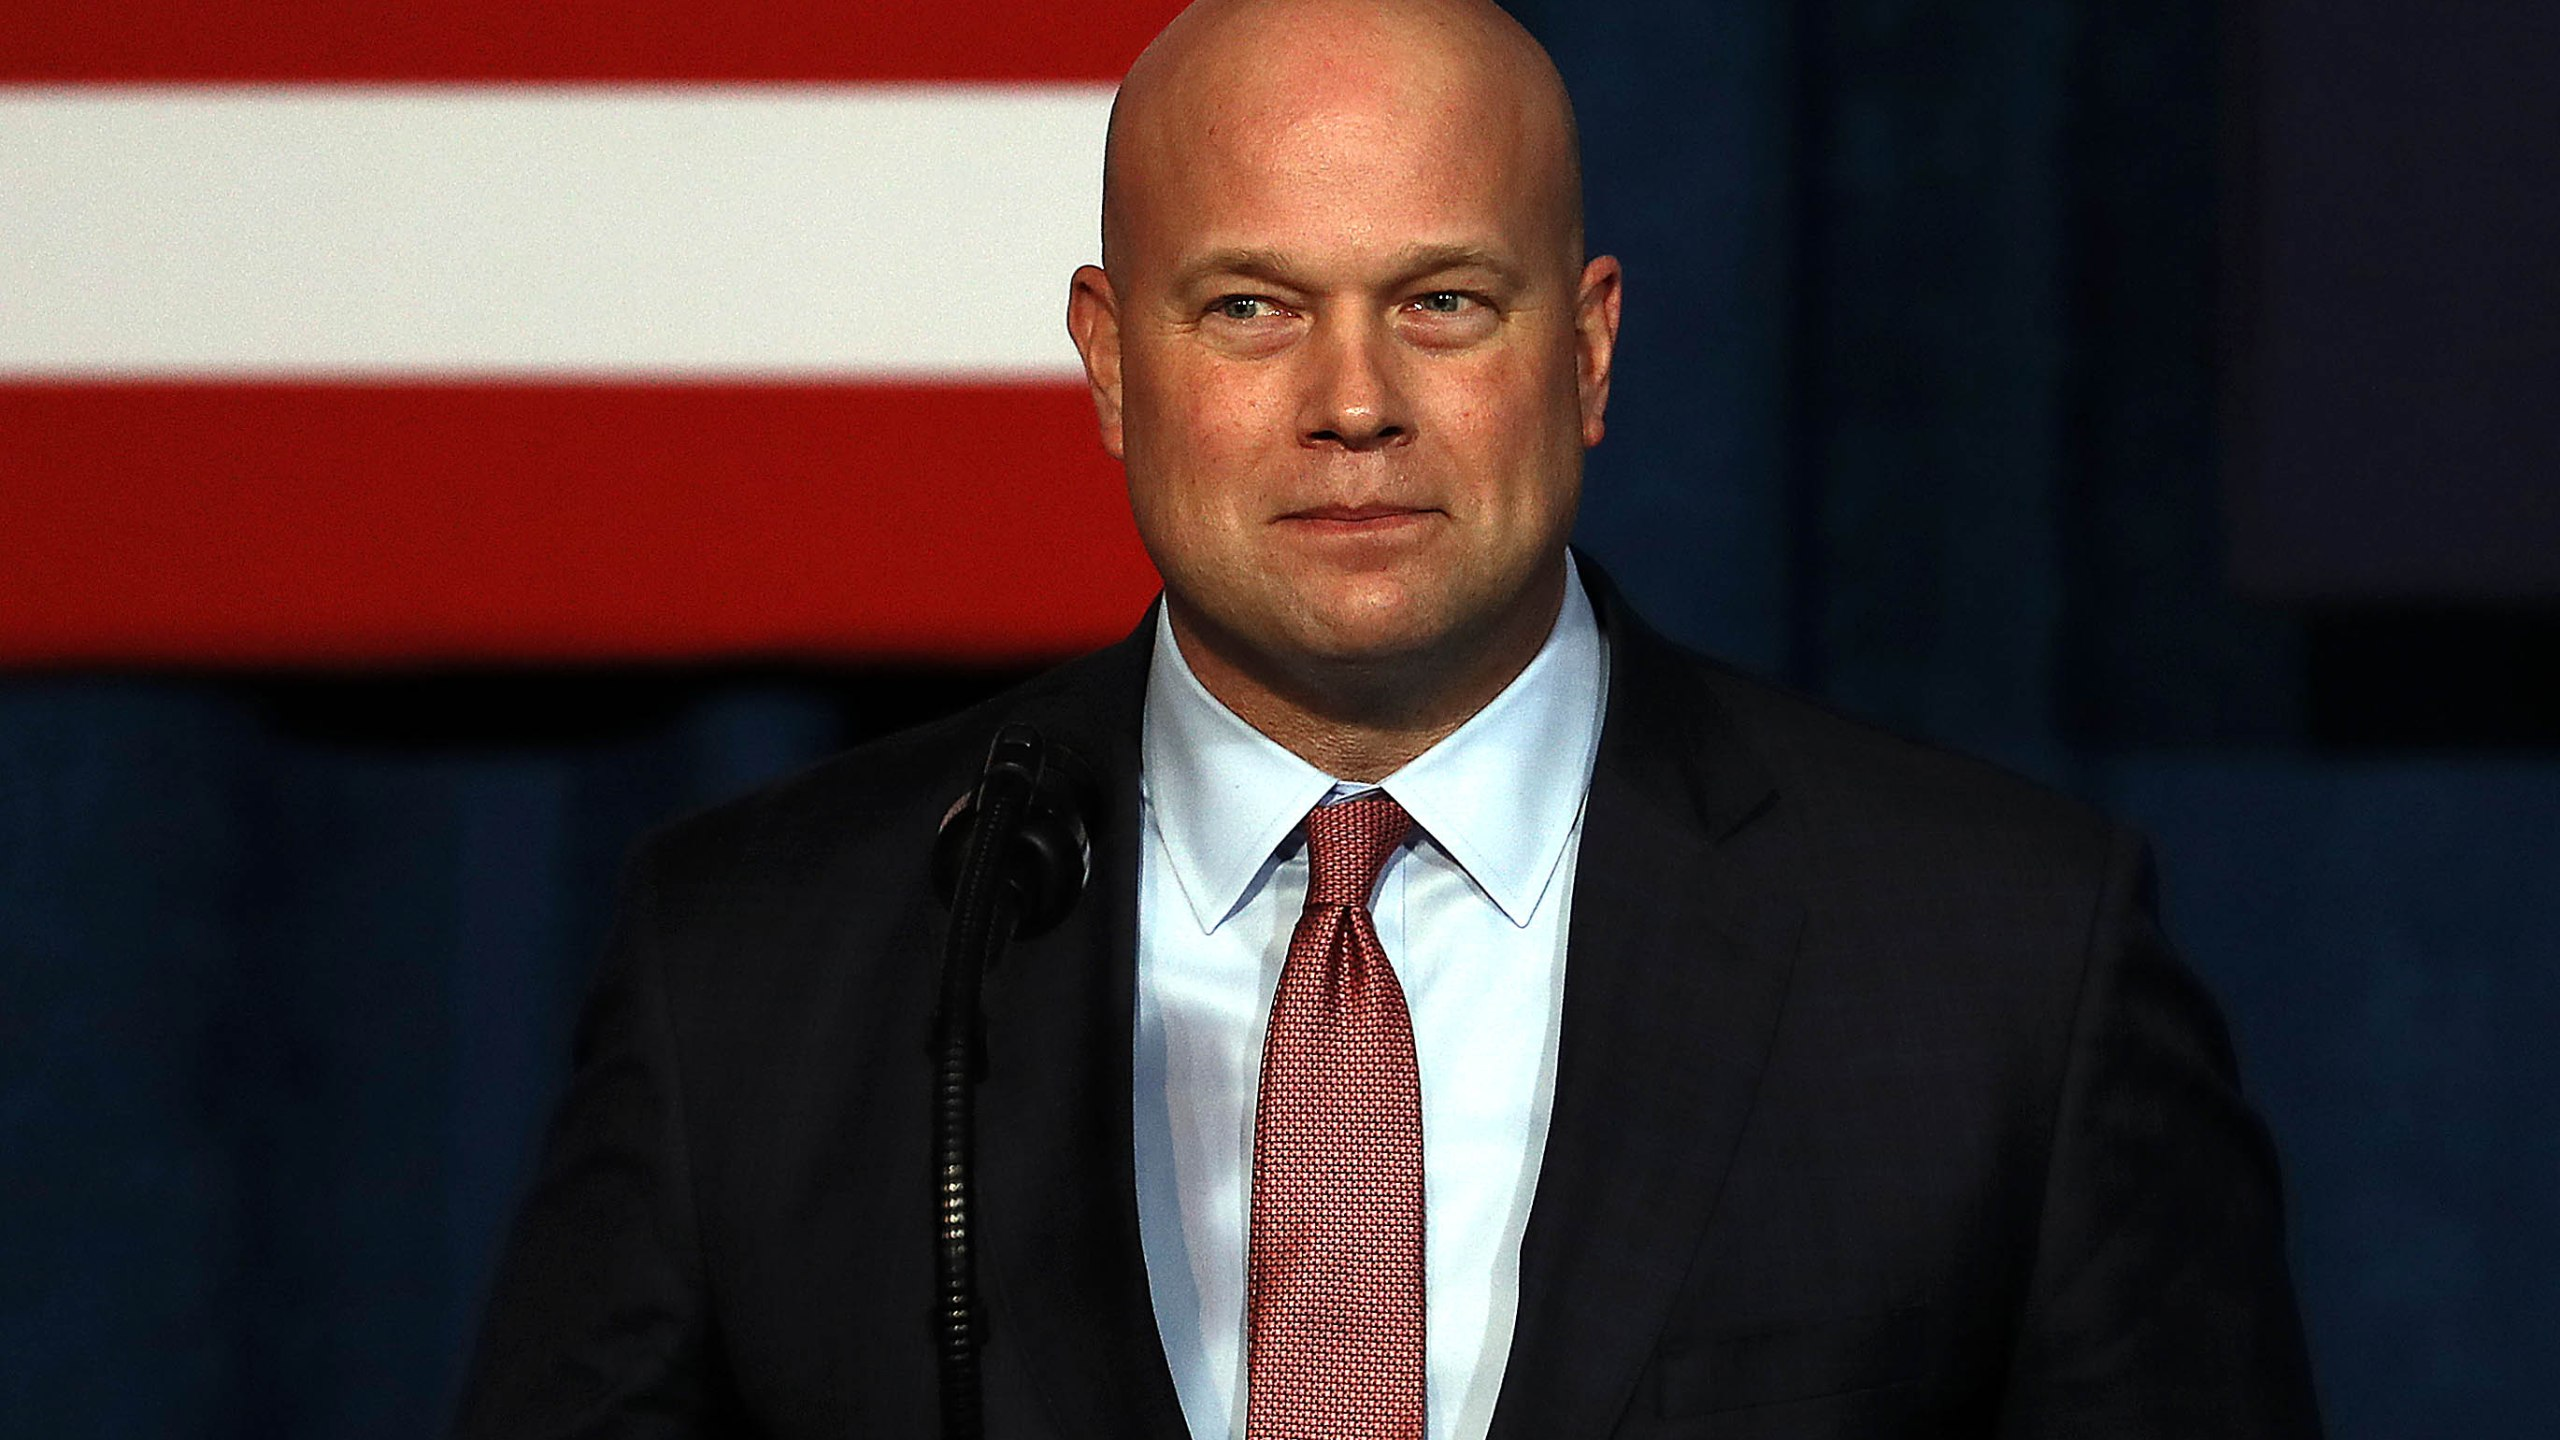 Acting Attorney General Matthew Whitaker addresses the Project Safe Neighborhoods National Conference in Kansas City, Missouri on Dec. 7, 2018. (Credit: Jamie Squire/Getty Images)